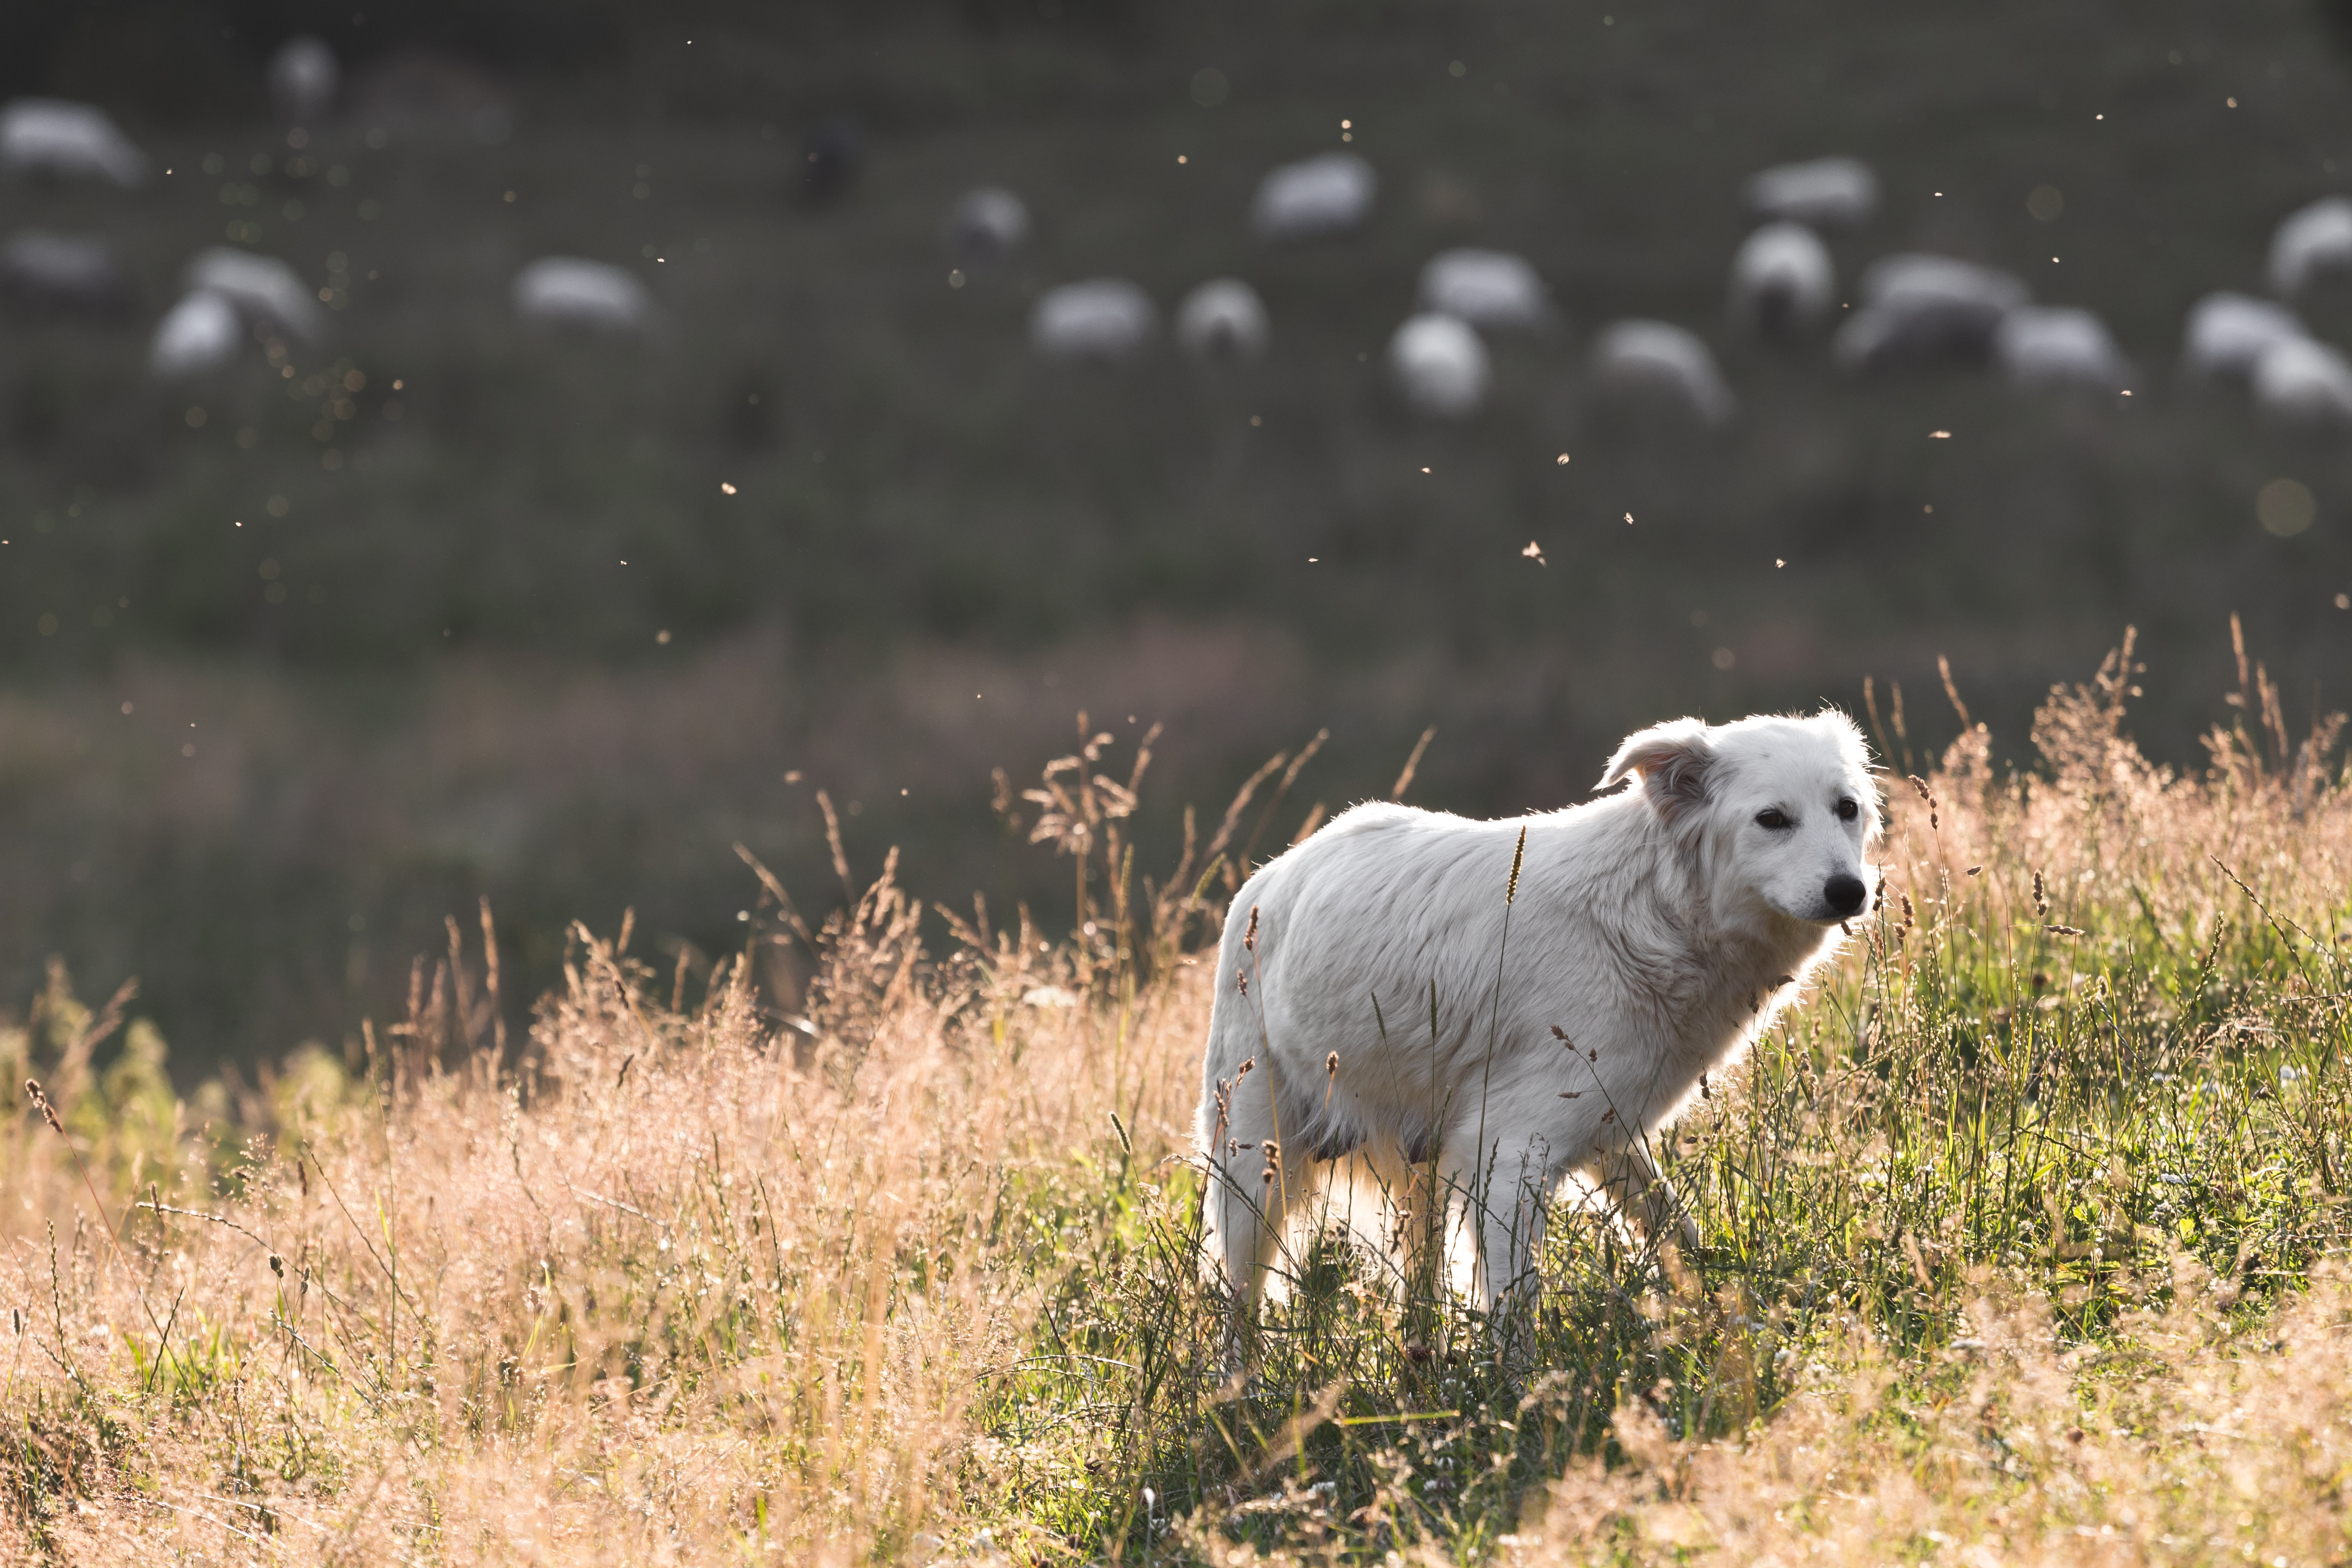 short-coated white dog standing on open field at daytime